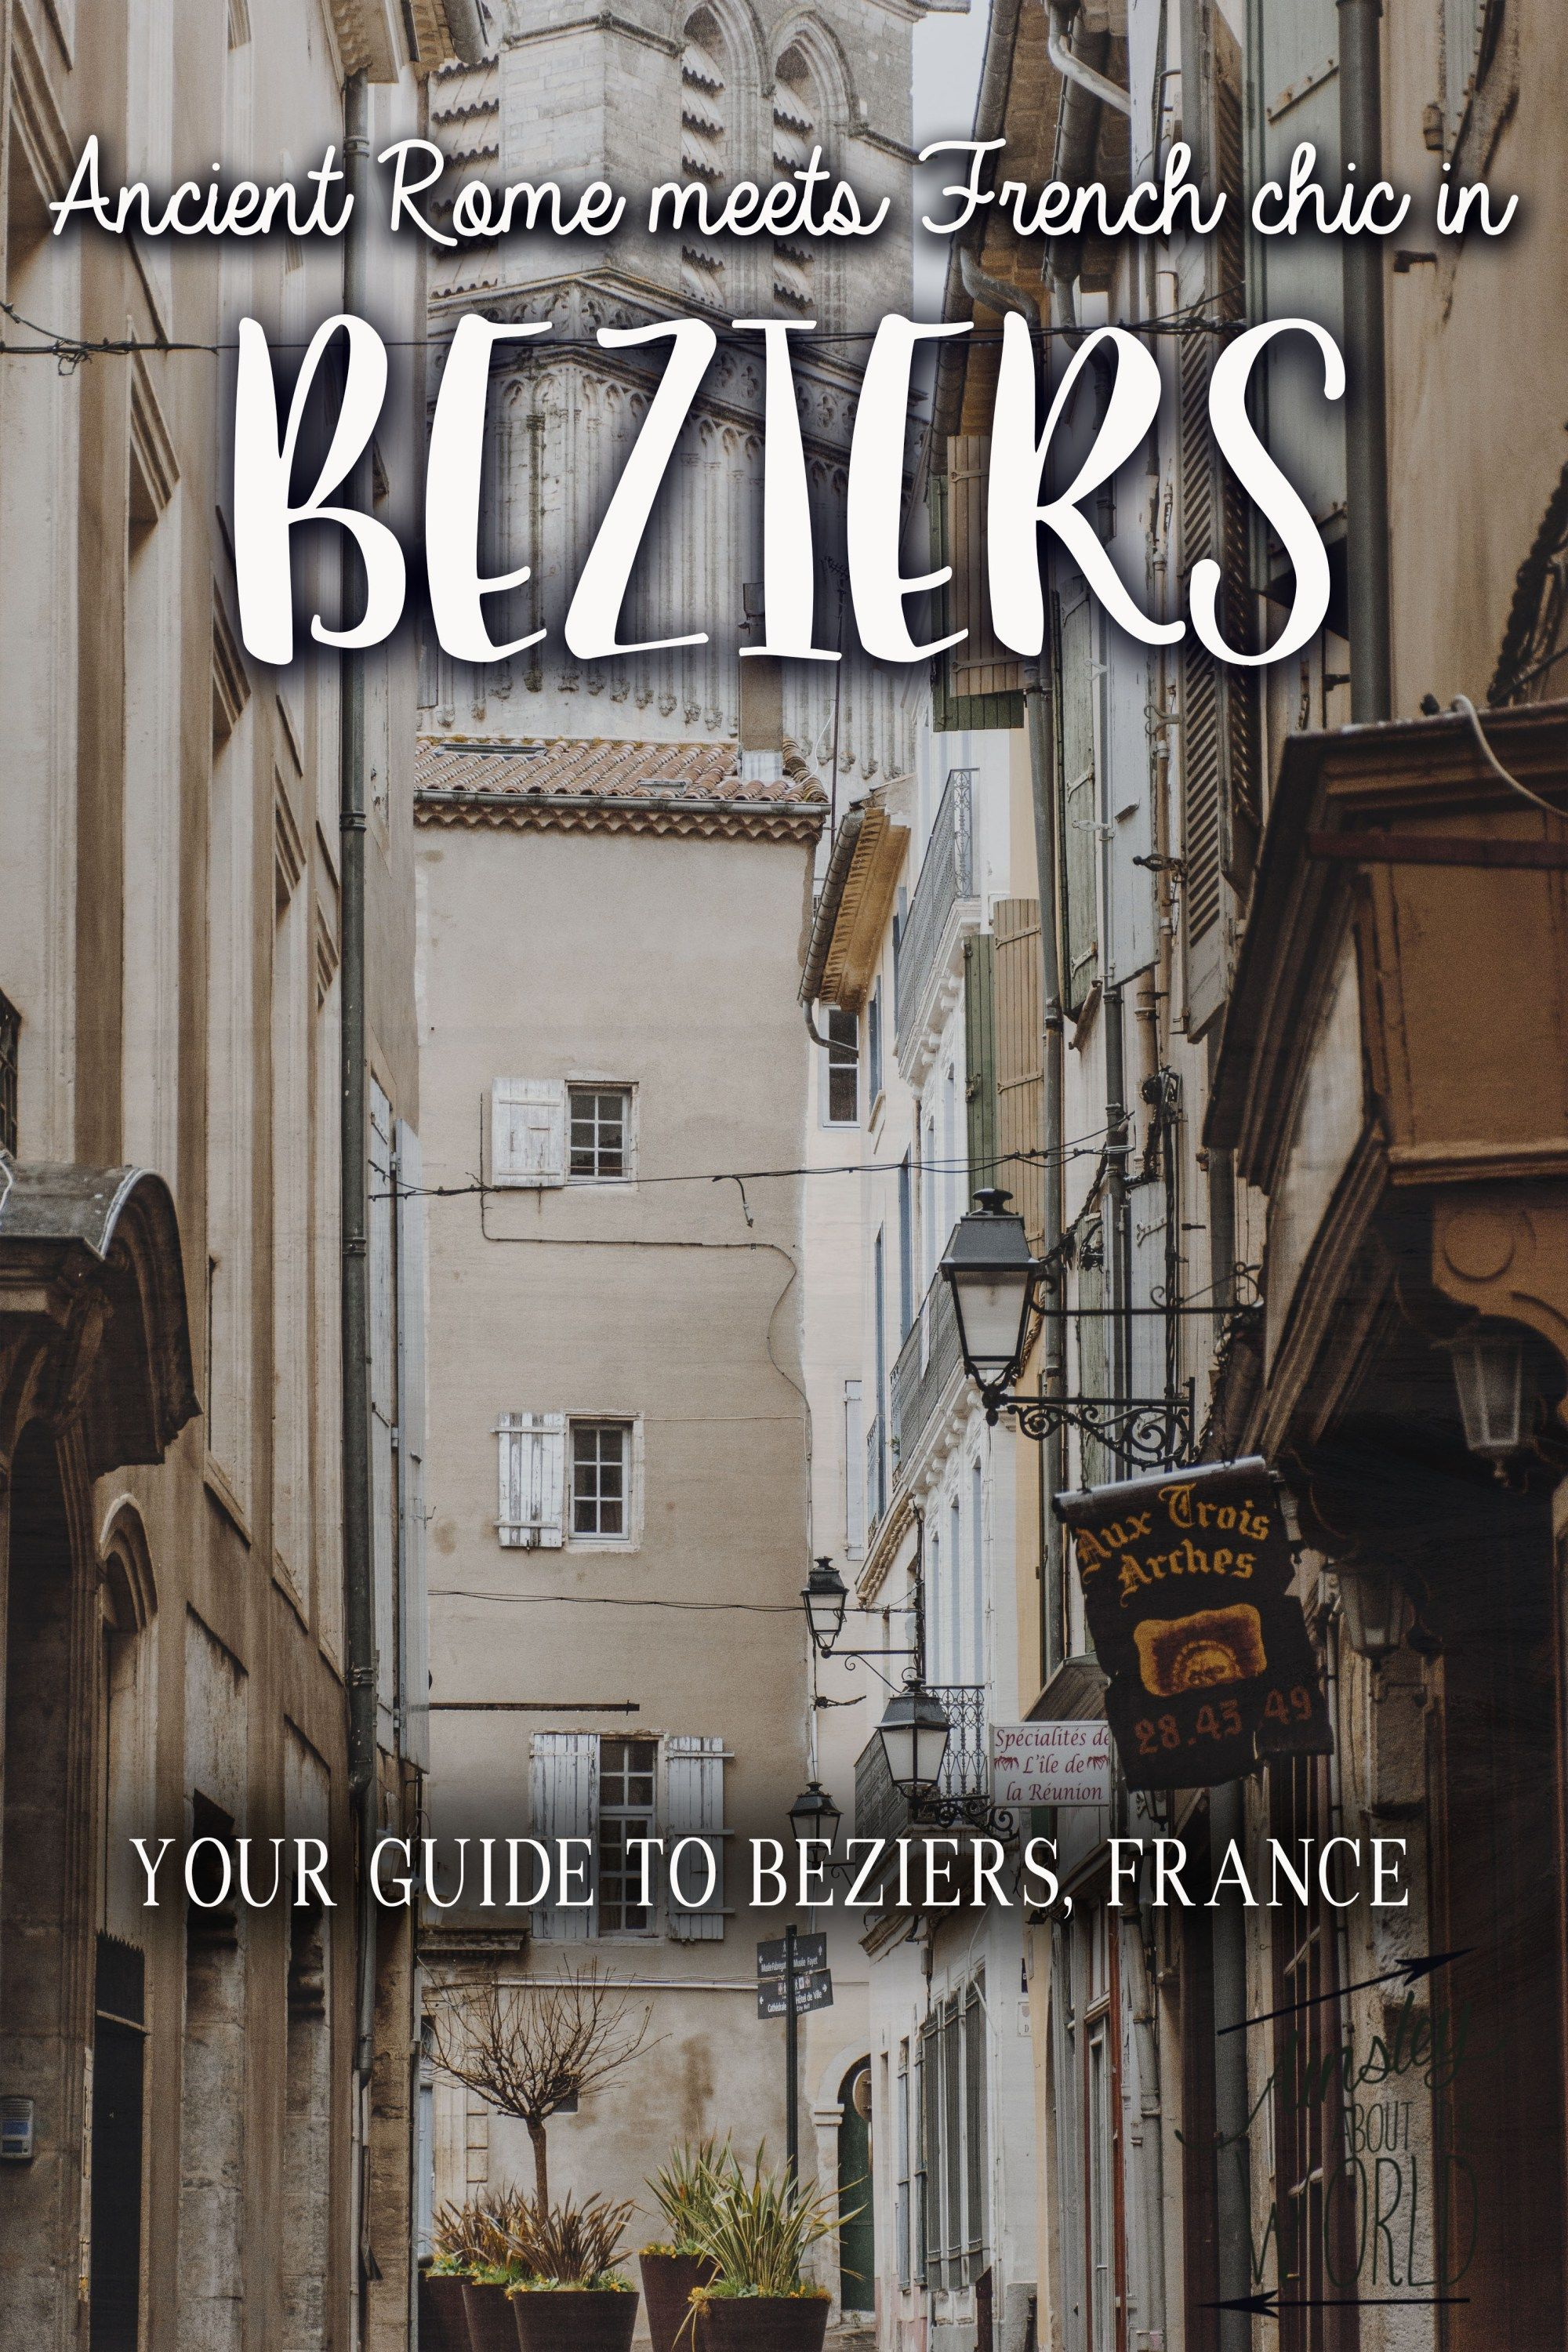 Béziers france travel guide | tips, reviews & where to stay.